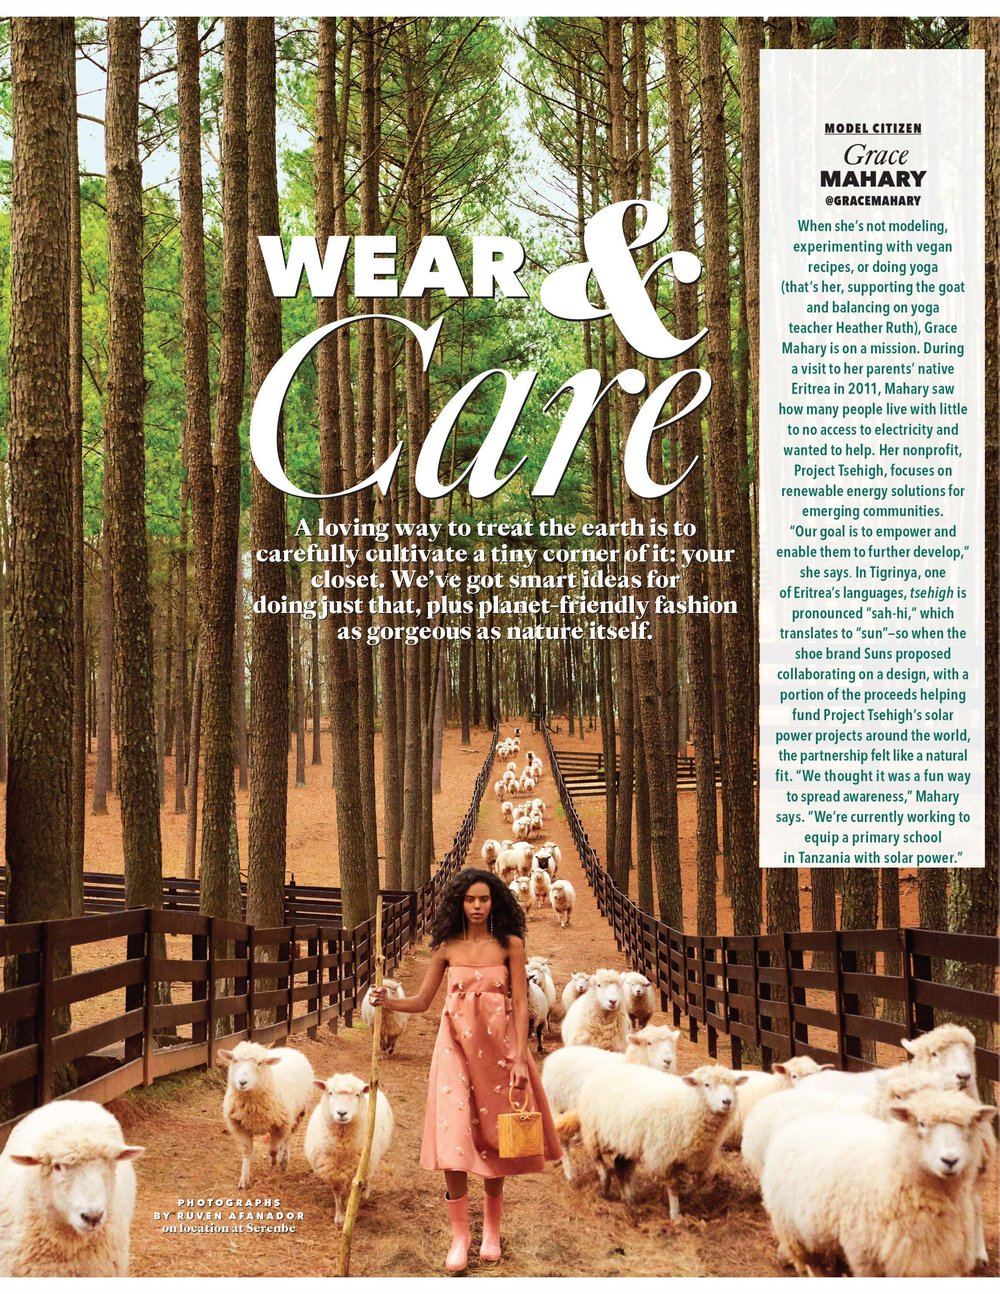 oprah magazine - PjT featured in O magazine April 2019 issue highlighting sustainability